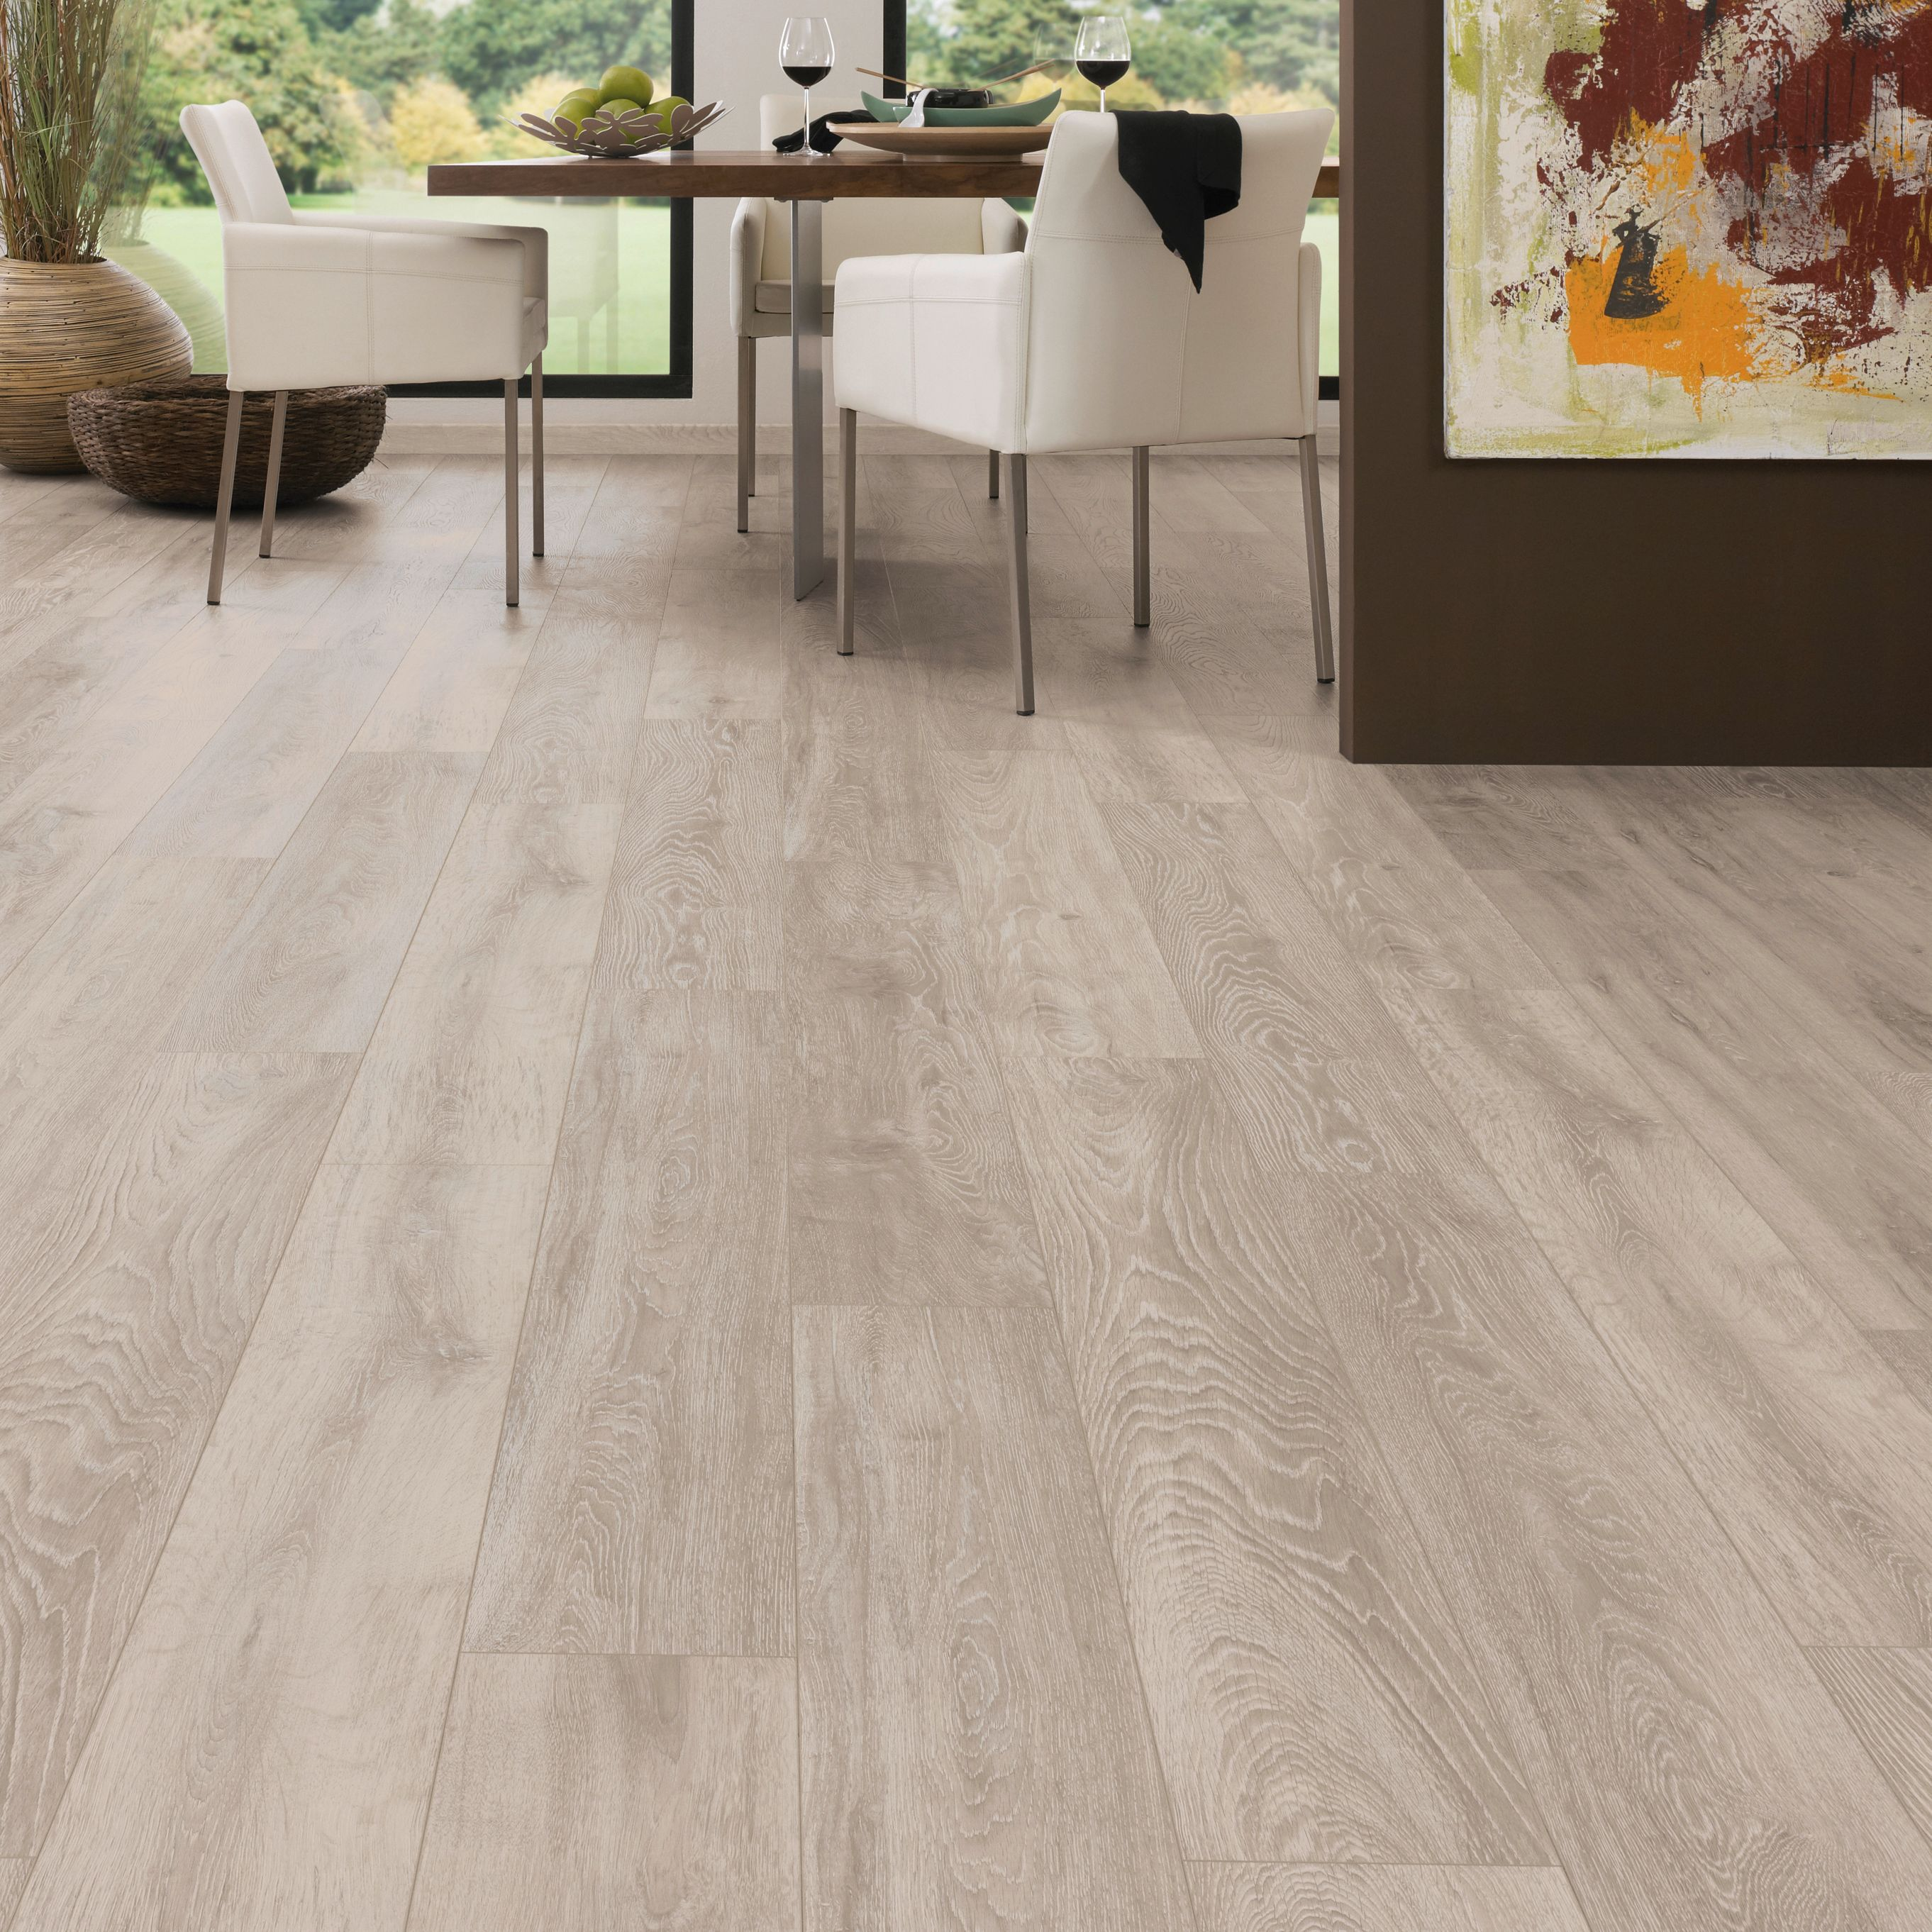 Amadeo Boulder Oak Effect Laminate Flooring 2 22 M² Pack Departments Diy At B Q